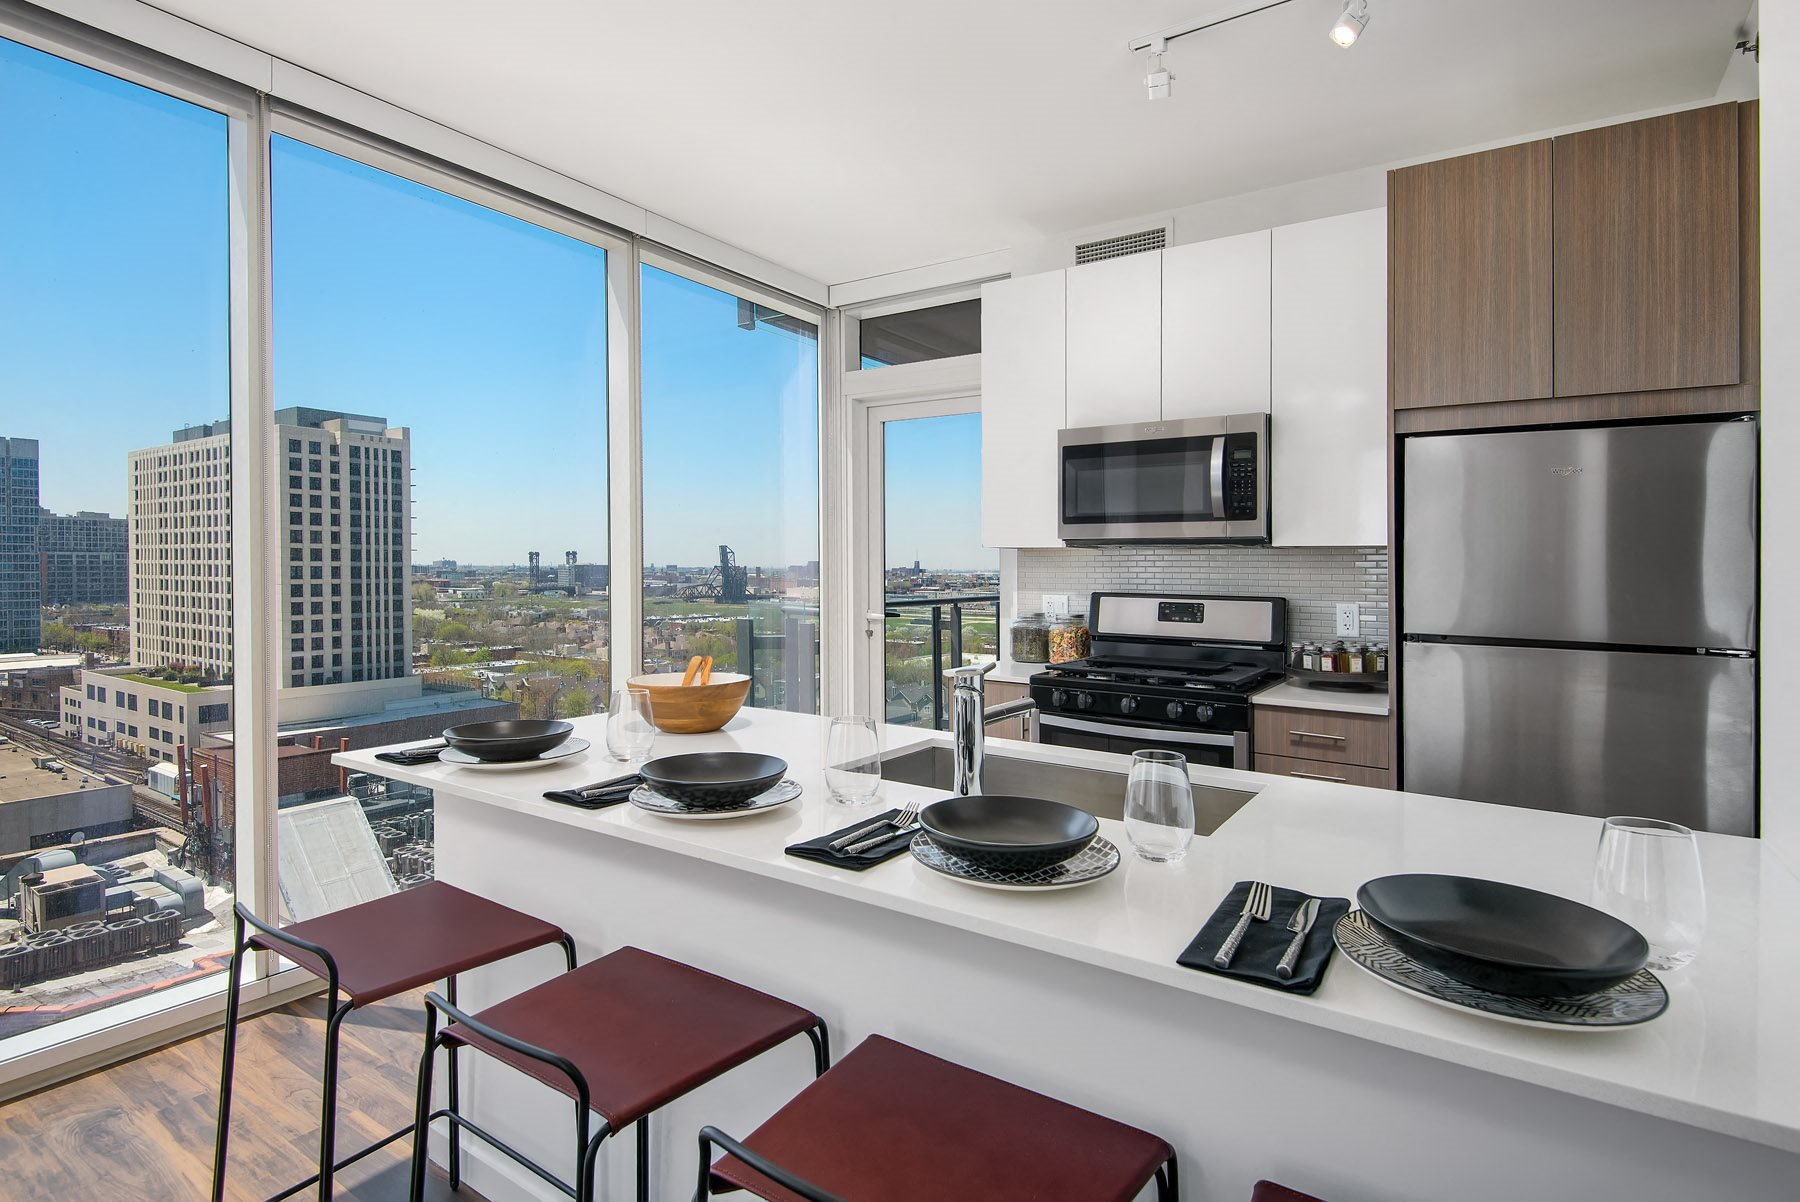 Modern kitchen with white cabinets and quartz kitchen countertops  at Eleven40, Chicago, Illinois